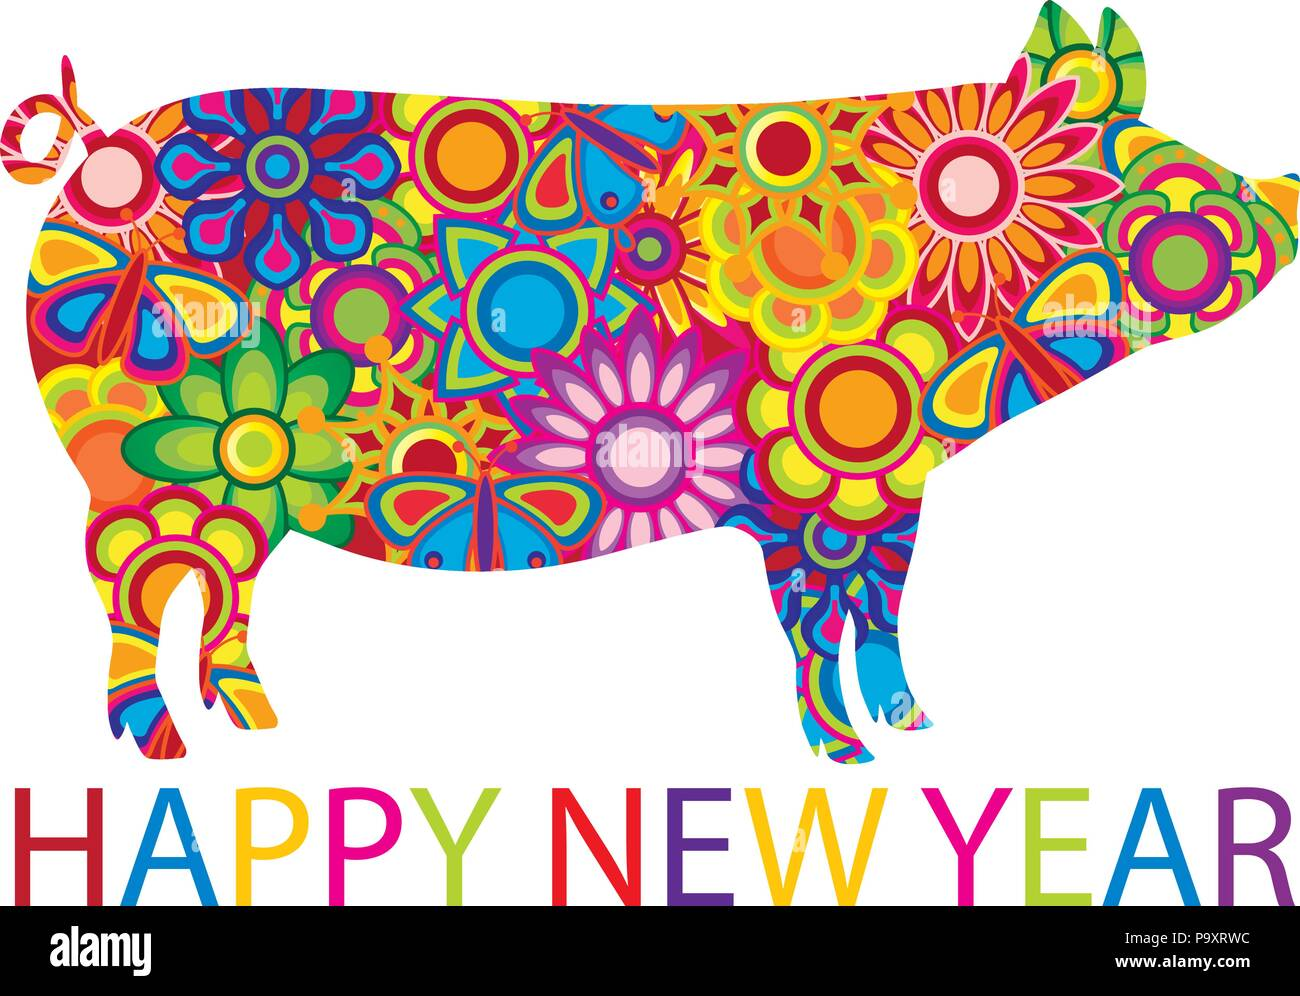 Chinese Lunar New Year 2019 Pig with spring flowers floral pattern